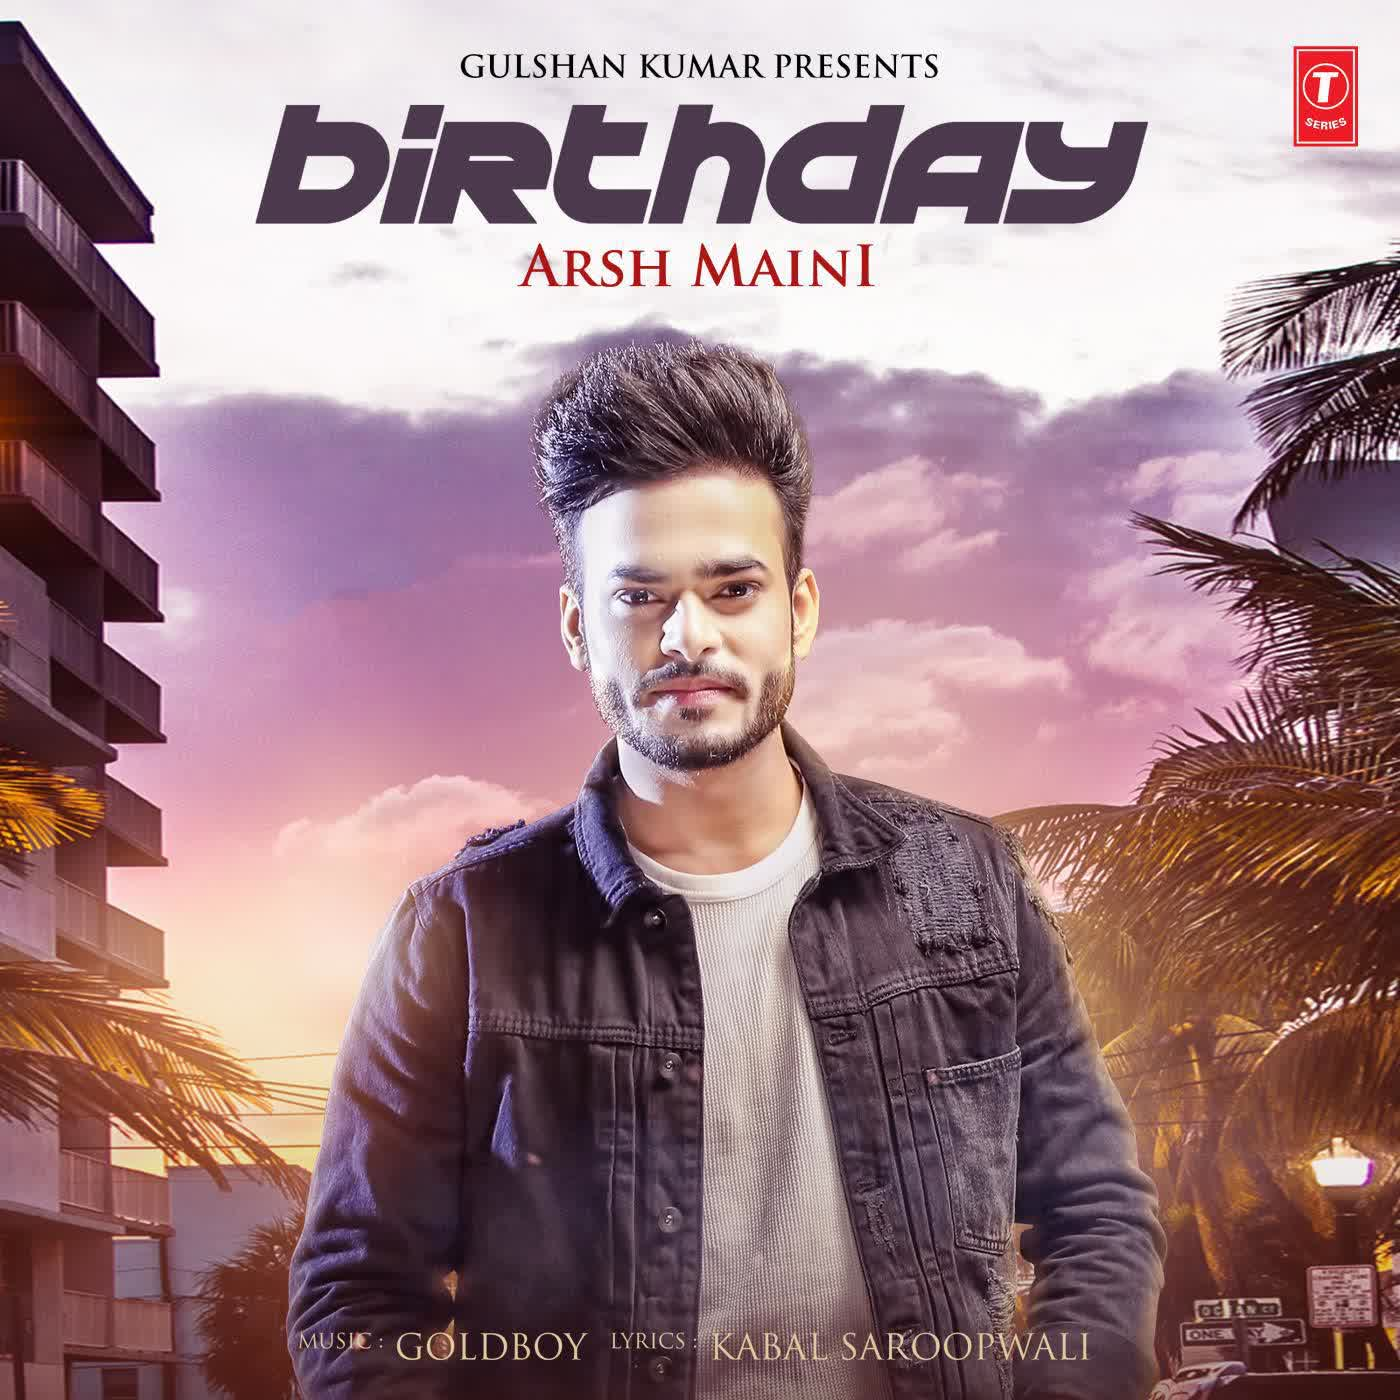 Birthday Arsh Maini